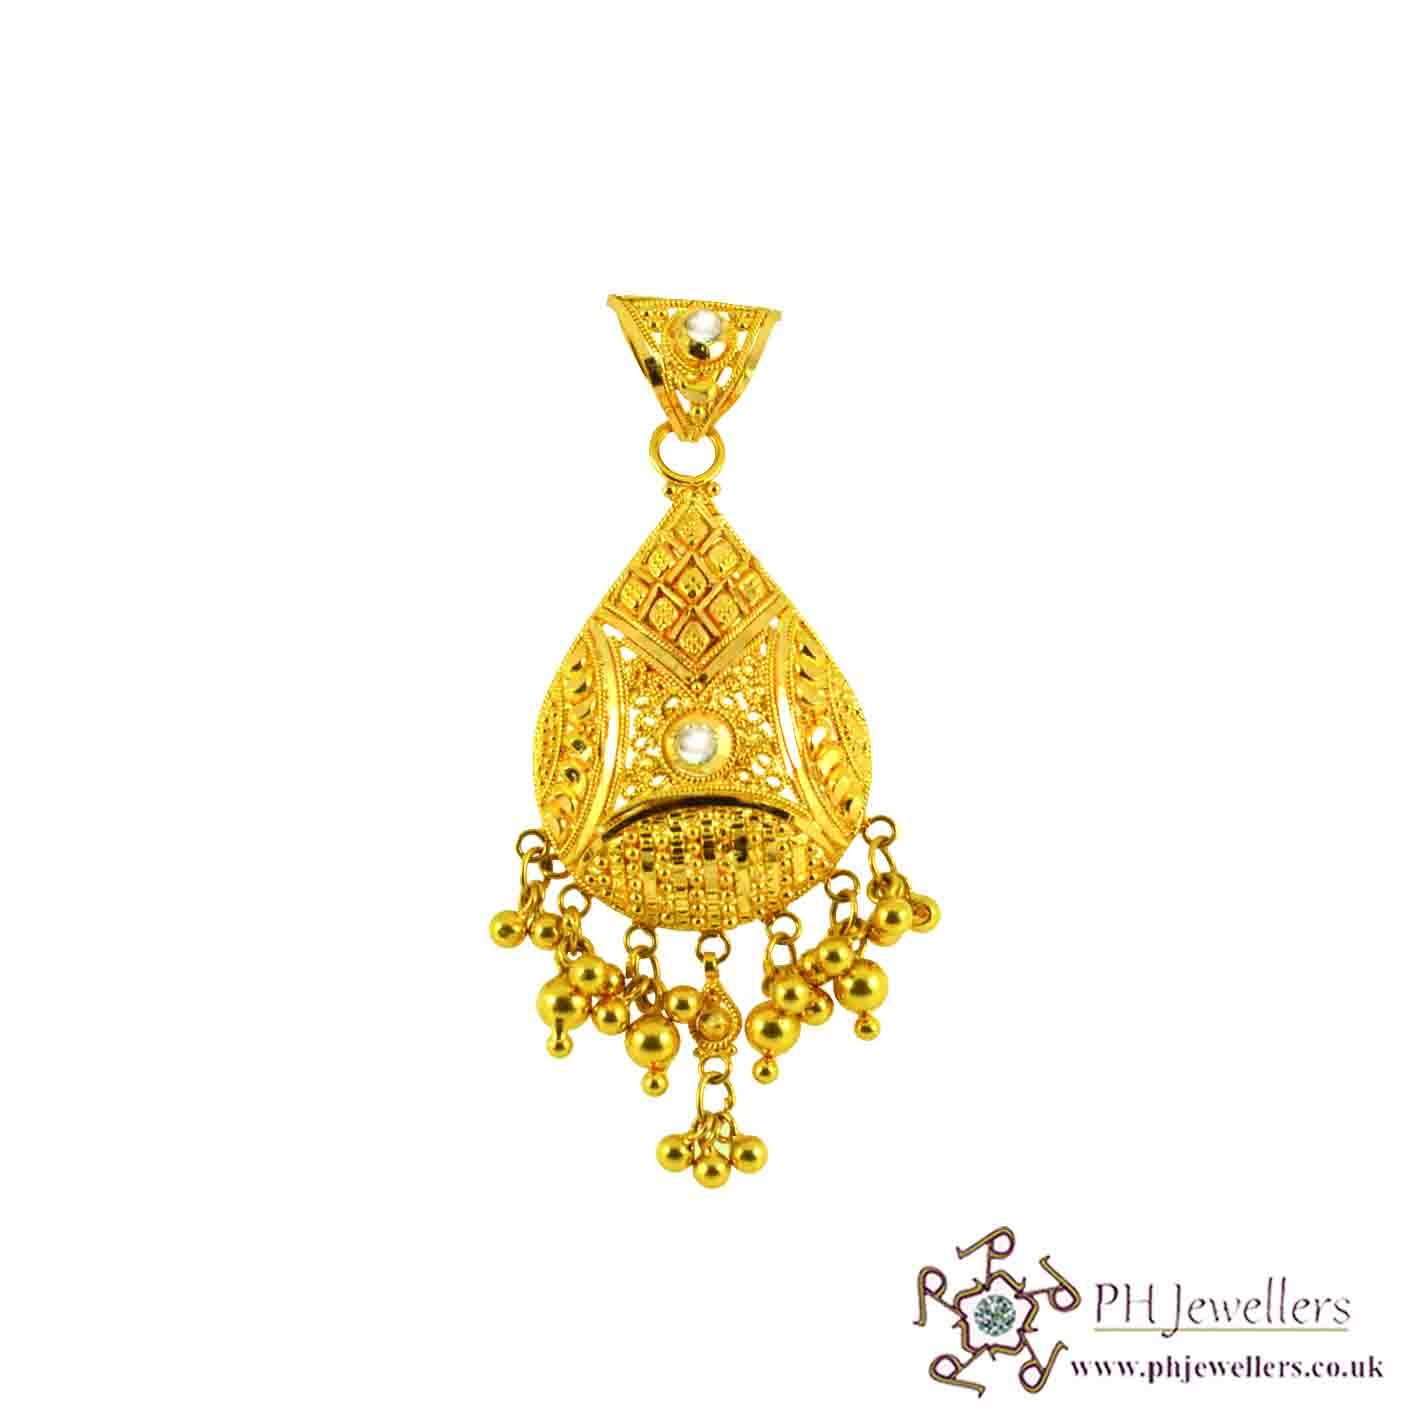 22ct 916 Hallmark Yellow Gold Tear Drop Pendant CZ FP11